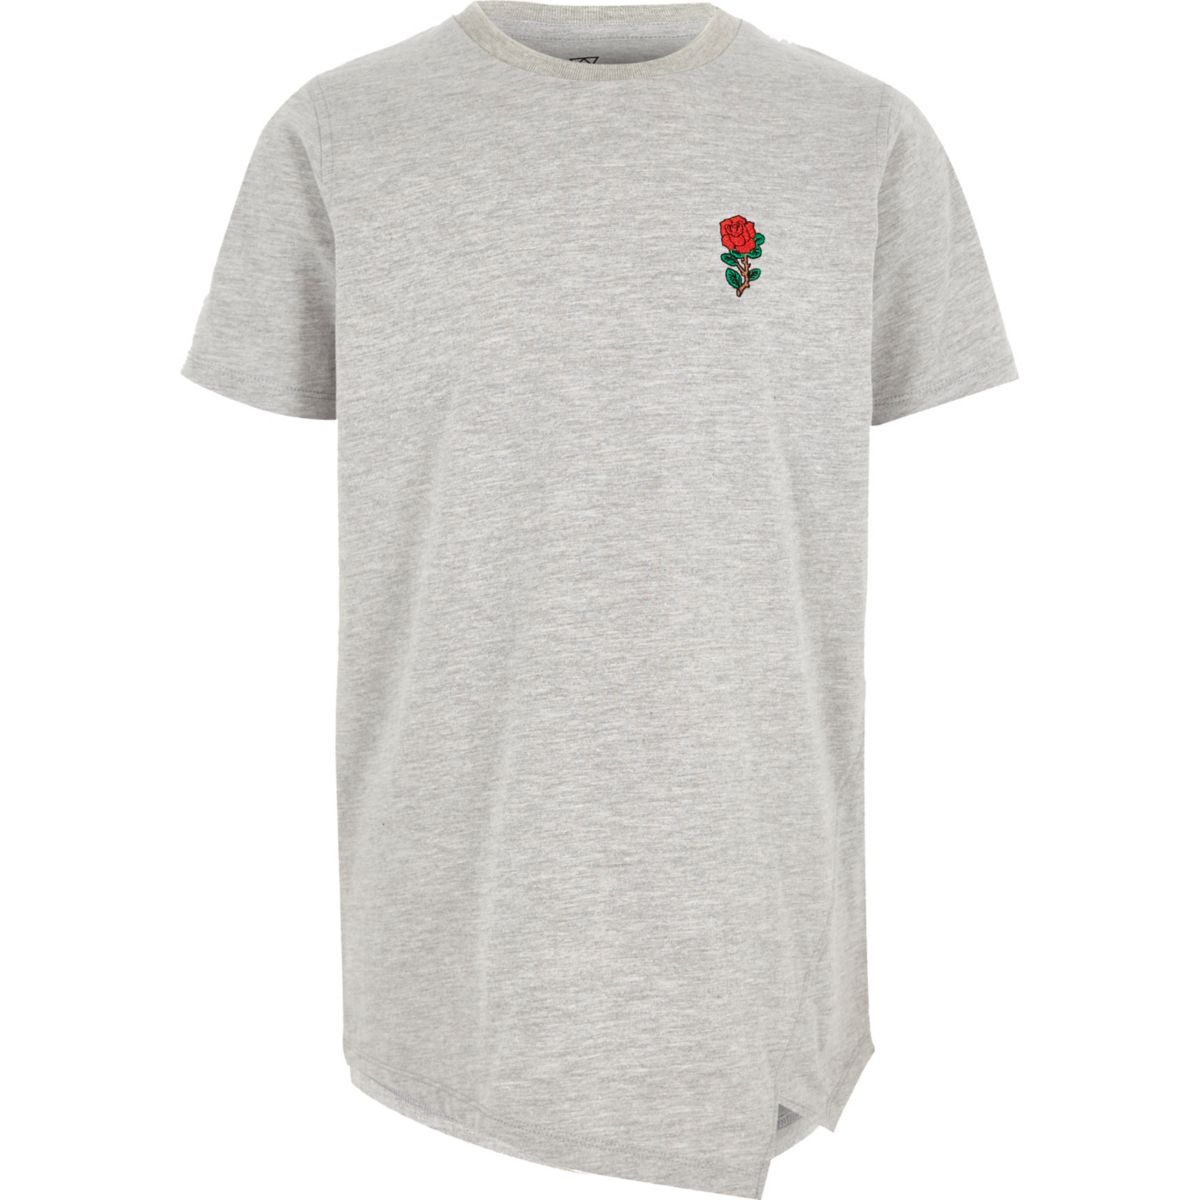 Boys grey marl rose embroidered T-shirt